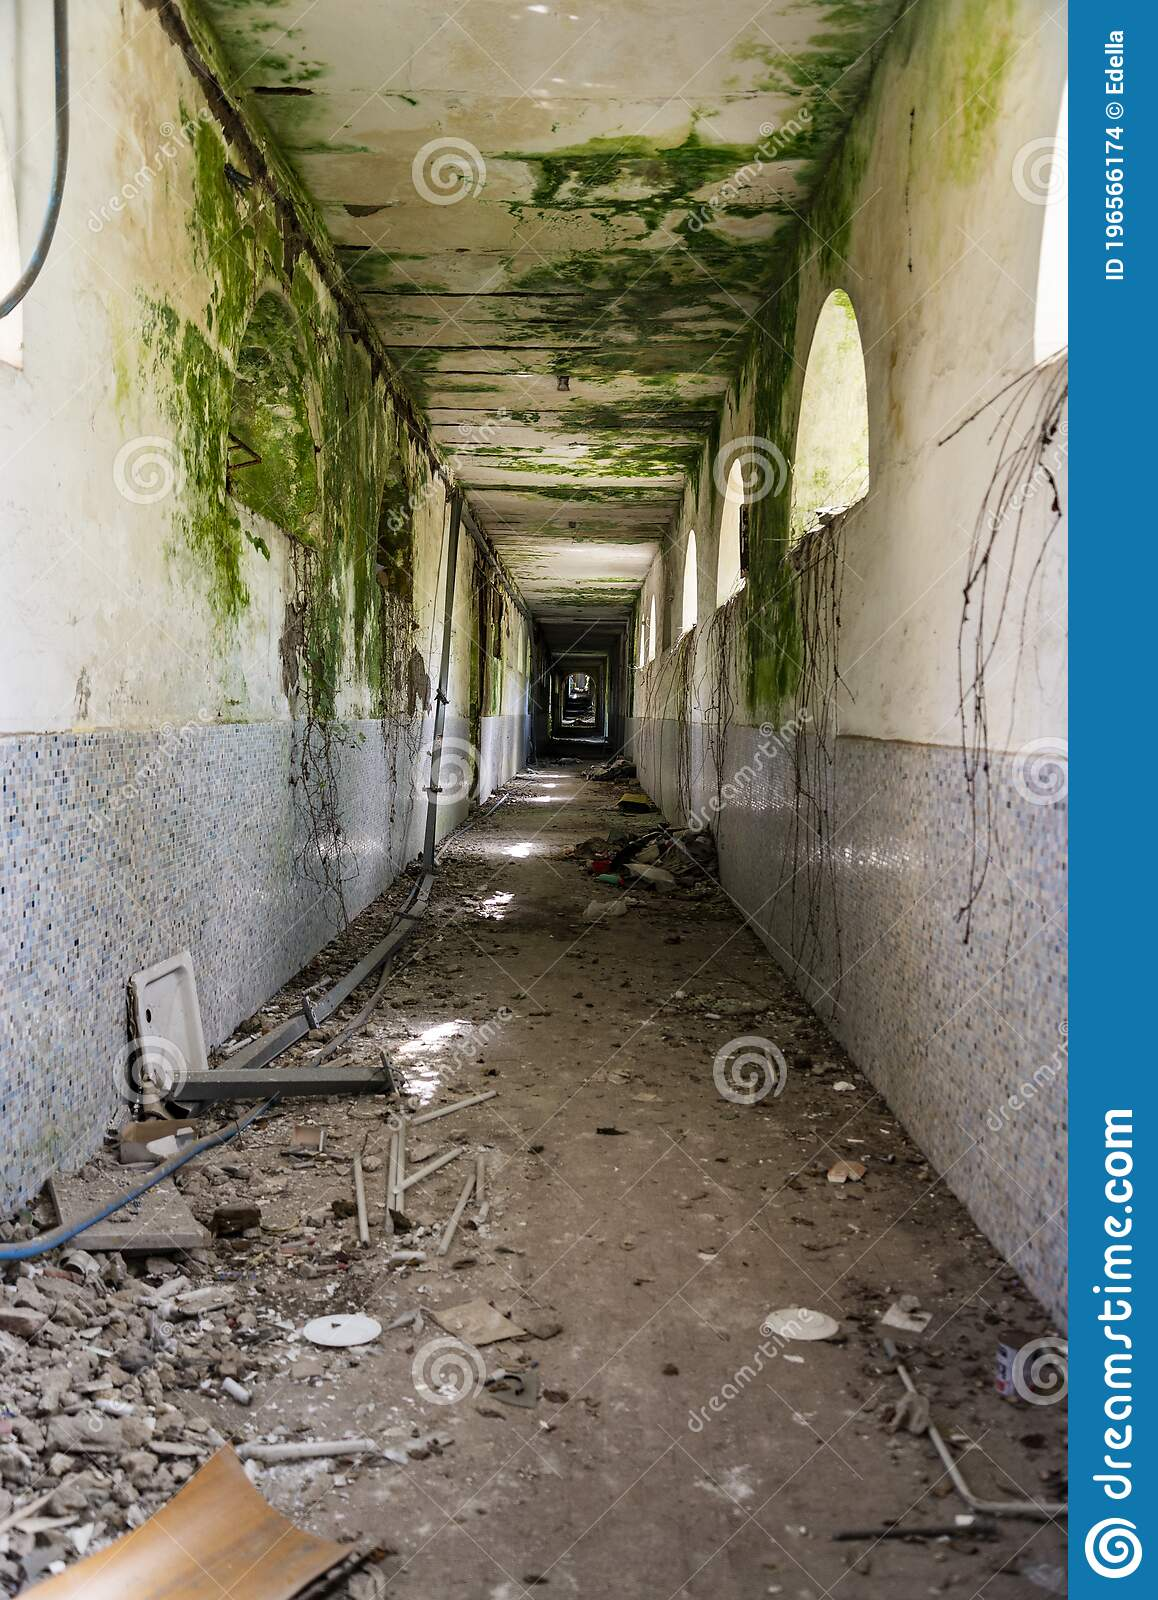 Internal Spaces Into The Abandoned Insane Asylum In Naples Italy Stock Photo Image Of Abandon Interior 196566174